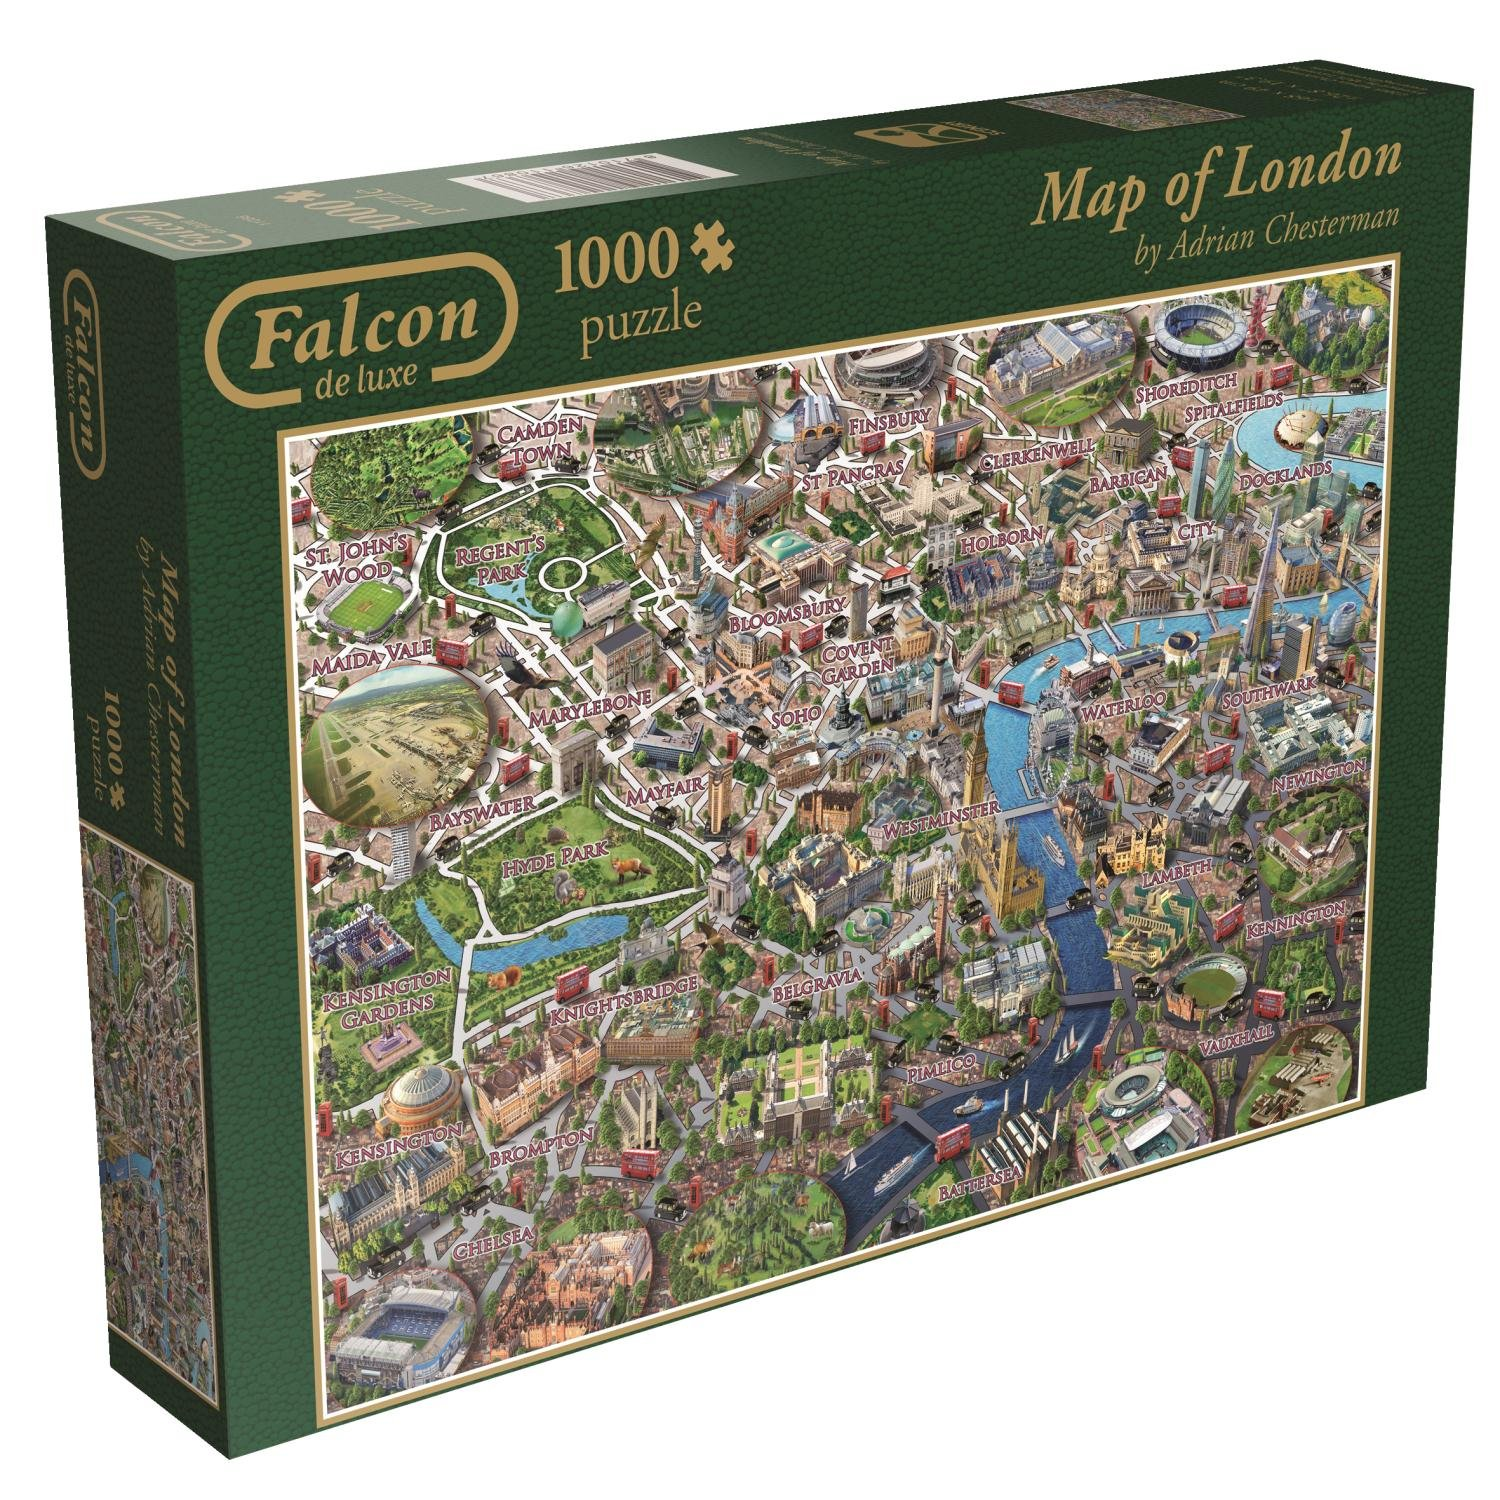 Pleasant Jumbo Games Falcon De Luxe Map Of London Jigsaw Puzzle Piece  With Lovely Jumbo Games Falcon De Luxe Map Of London Jigsaw Puzzle Piece  Amazoncouk Toys  Games With Beautiful Hampton Court To Kew Gardens Also Olive Garden Coppull In Addition Wooden Garden Gazebos For Sale And Botanical Gardens Southport As Well As Royal Garden Villas Costa Adeje Additionally Sliding Doors To Garden From Amazoncouk With   Lovely Jumbo Games Falcon De Luxe Map Of London Jigsaw Puzzle Piece  With Beautiful Jumbo Games Falcon De Luxe Map Of London Jigsaw Puzzle Piece  Amazoncouk Toys  Games And Pleasant Hampton Court To Kew Gardens Also Olive Garden Coppull In Addition Wooden Garden Gazebos For Sale From Amazoncouk